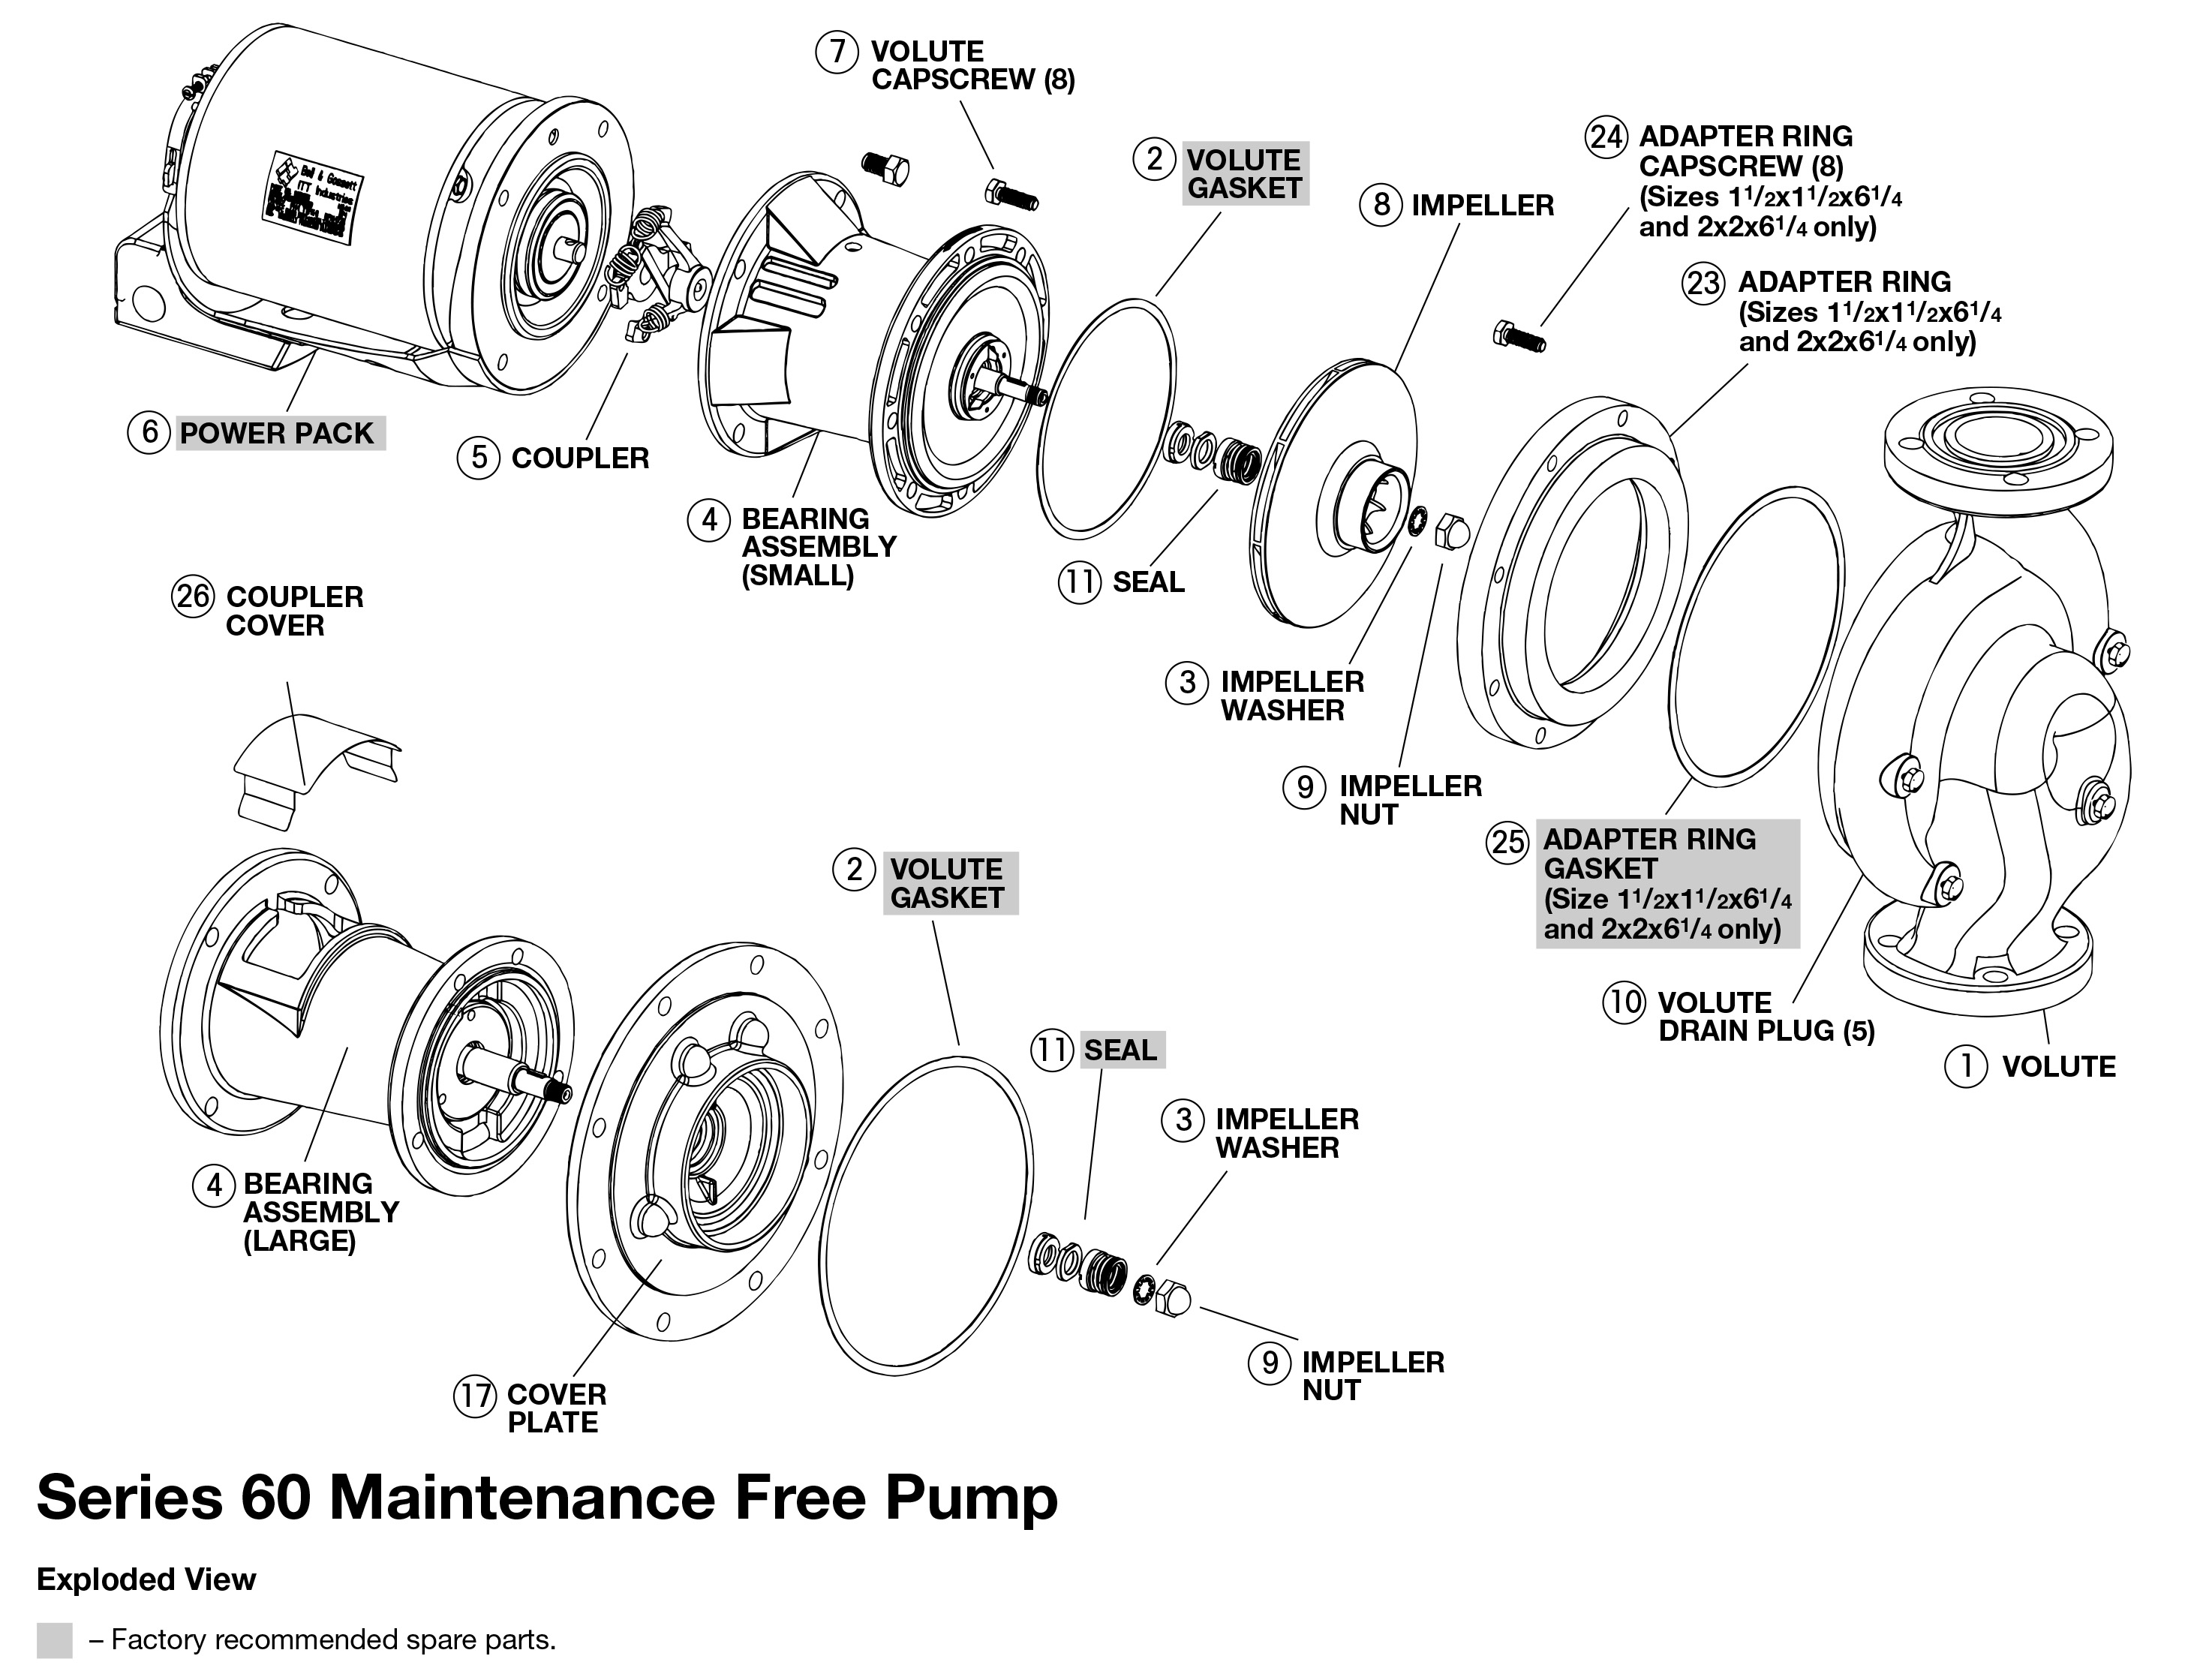 bell gossett series 60 in line centrifugal pumps bell gossett series 60 maintenance exploded view